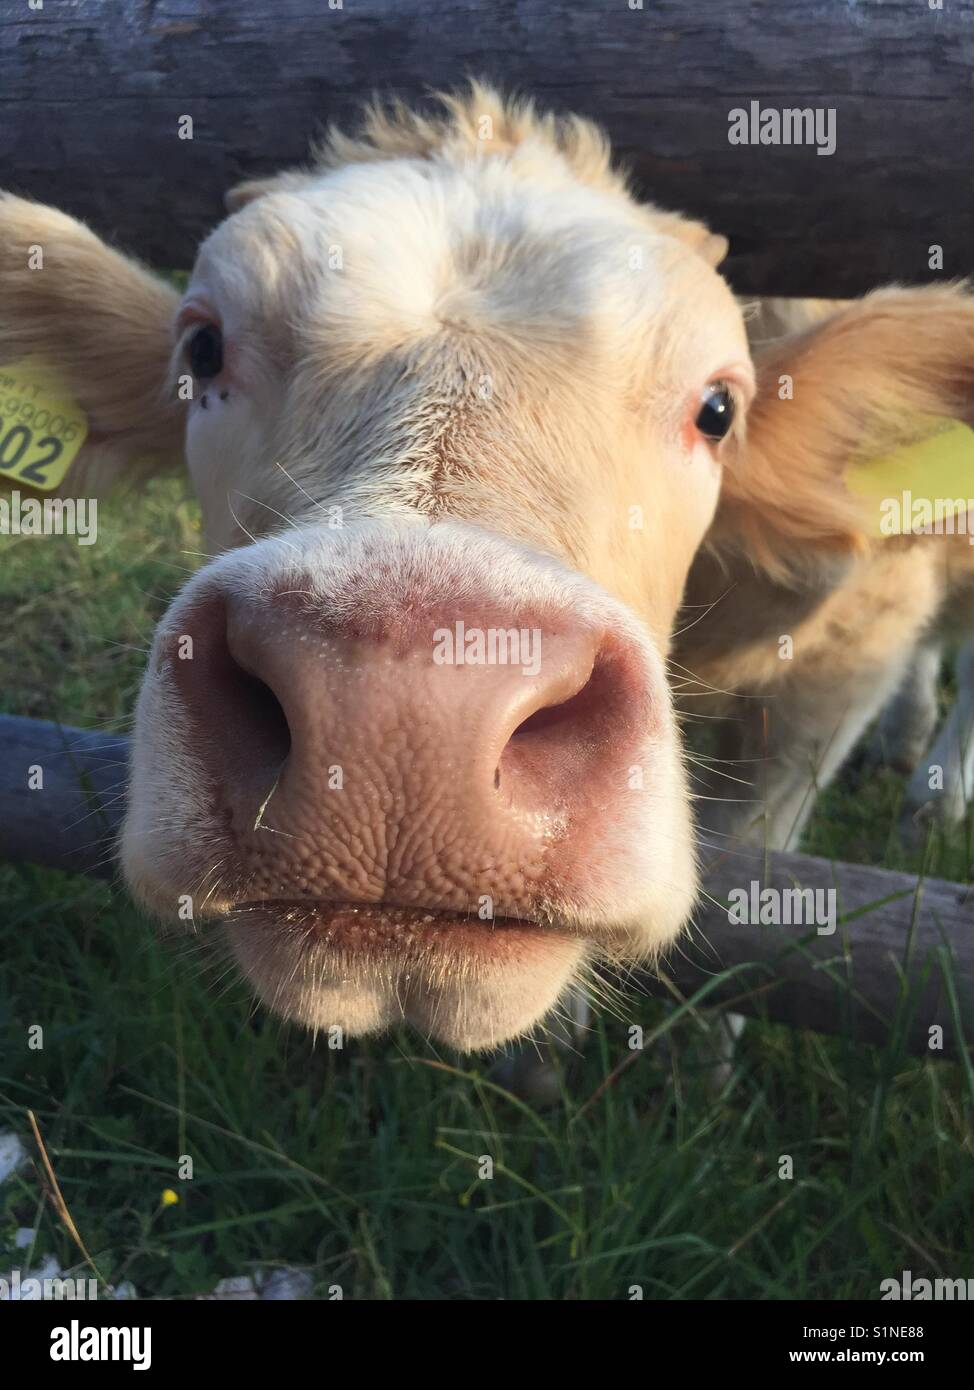 Friendly baby cow - Stock Image